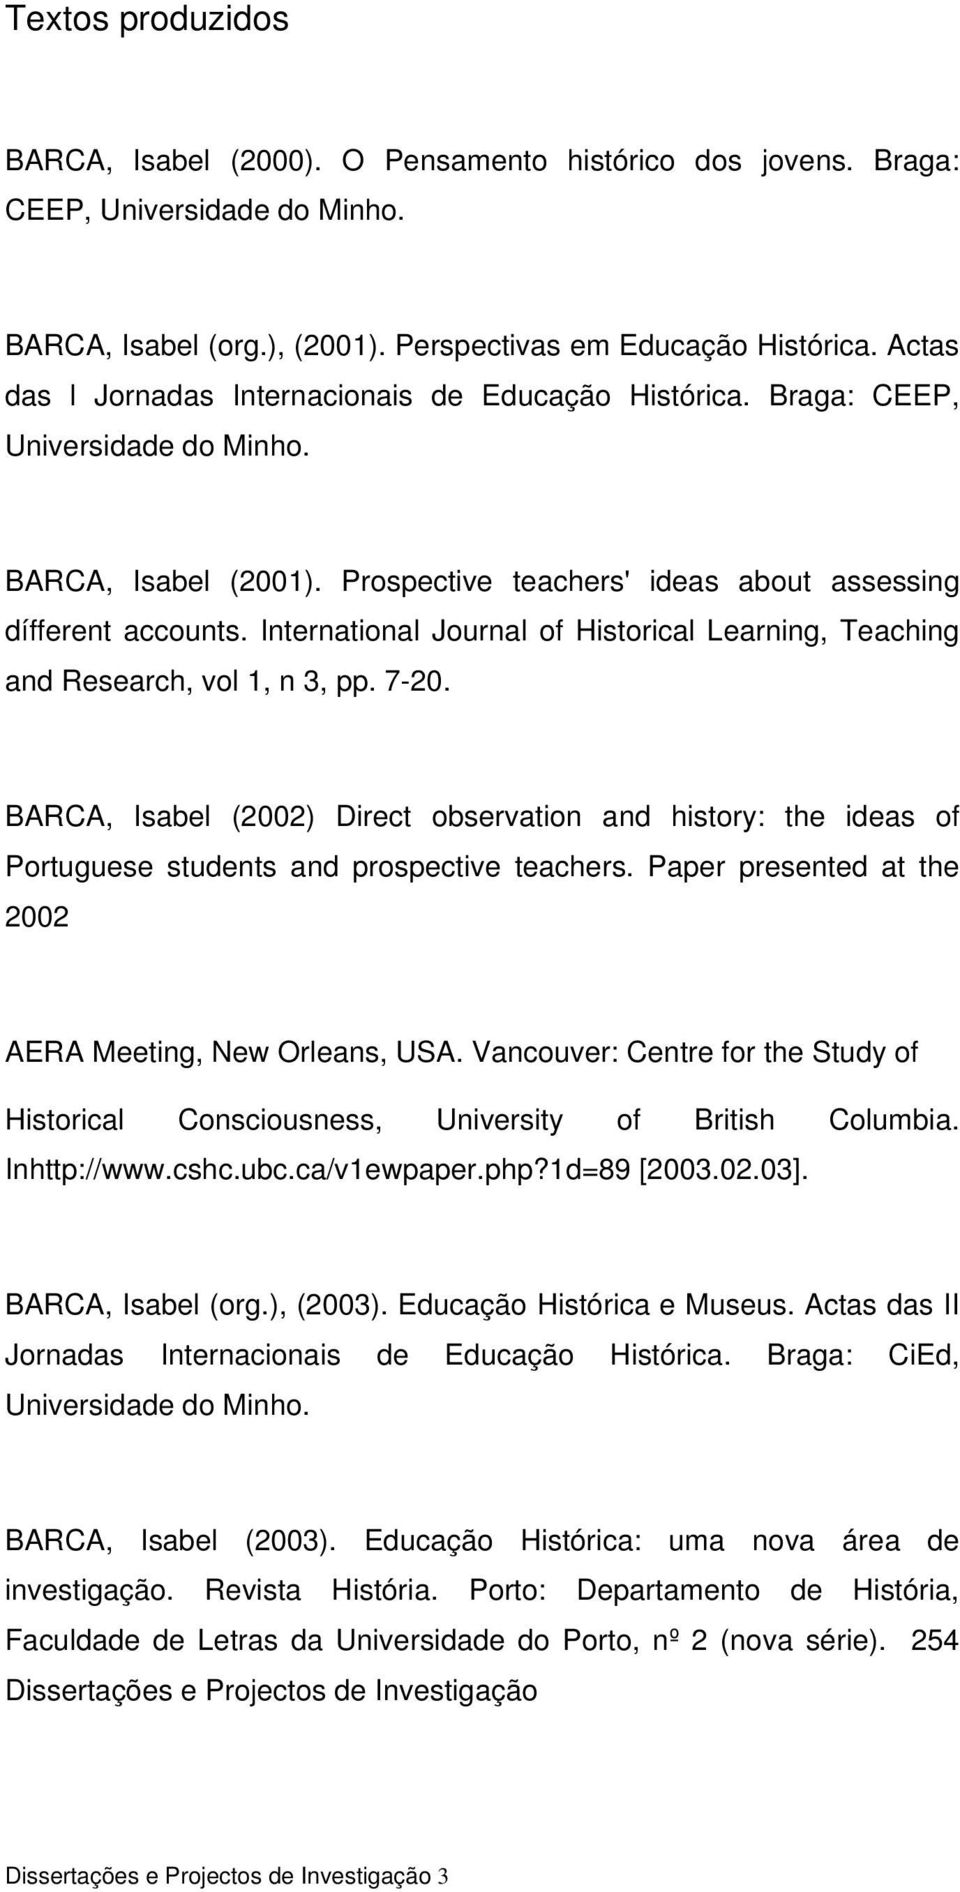 International Journal of Historical Learning, Teaching and Research, vol 1, n 3, pp. 7-20.